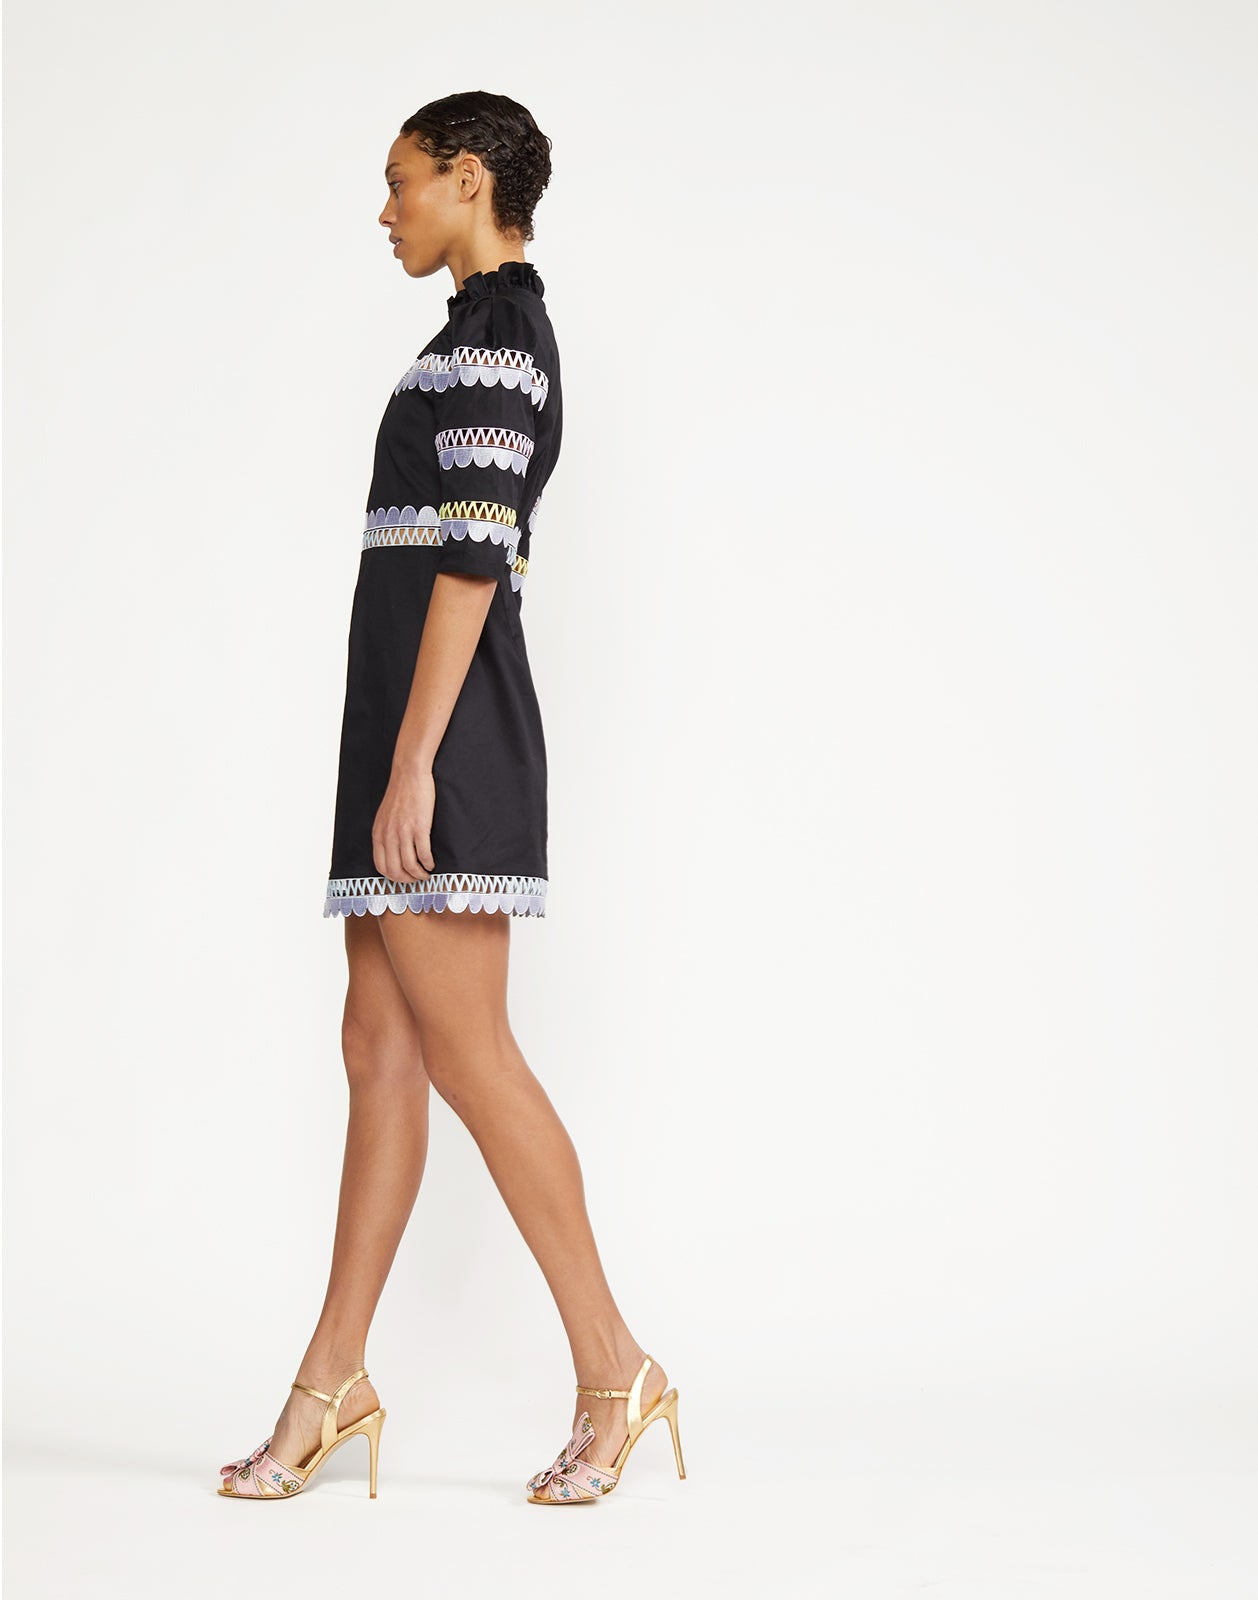 Side view of embroidered ruffle dress with fitted torso.